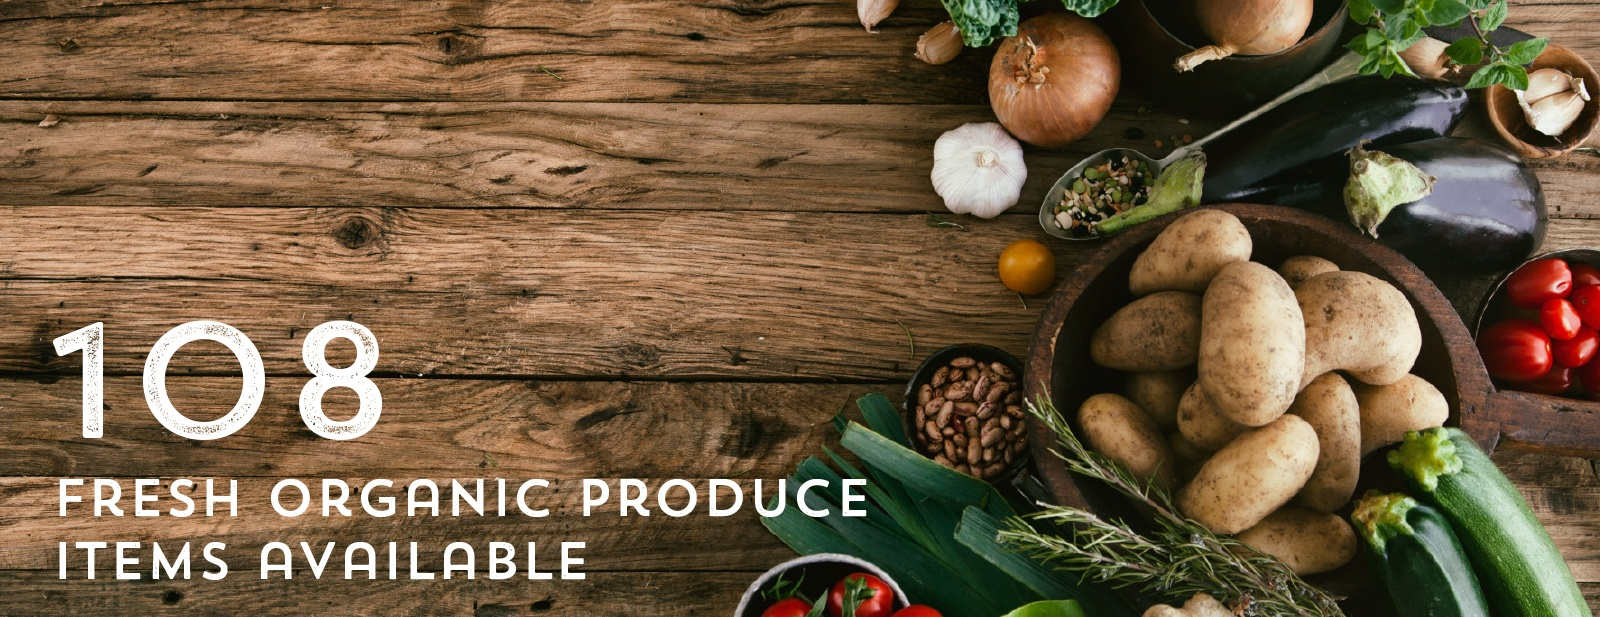 108 Fresh Organic Produce Varieties Available